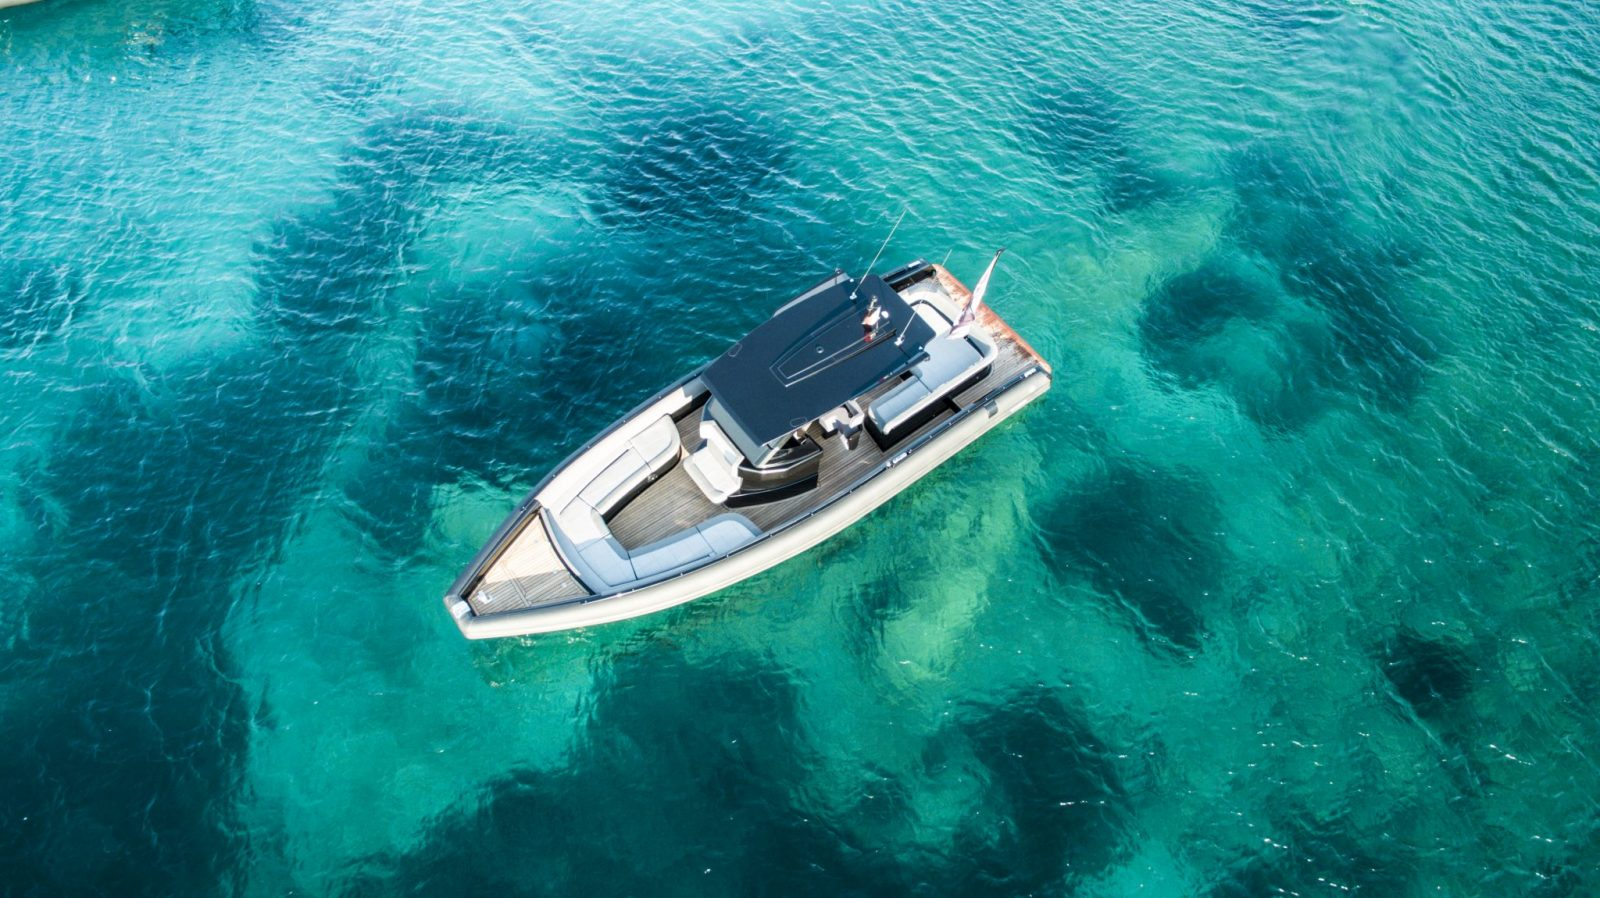 Luxury yacht for Sale | Black Shiver 100 (New) by Novamarine